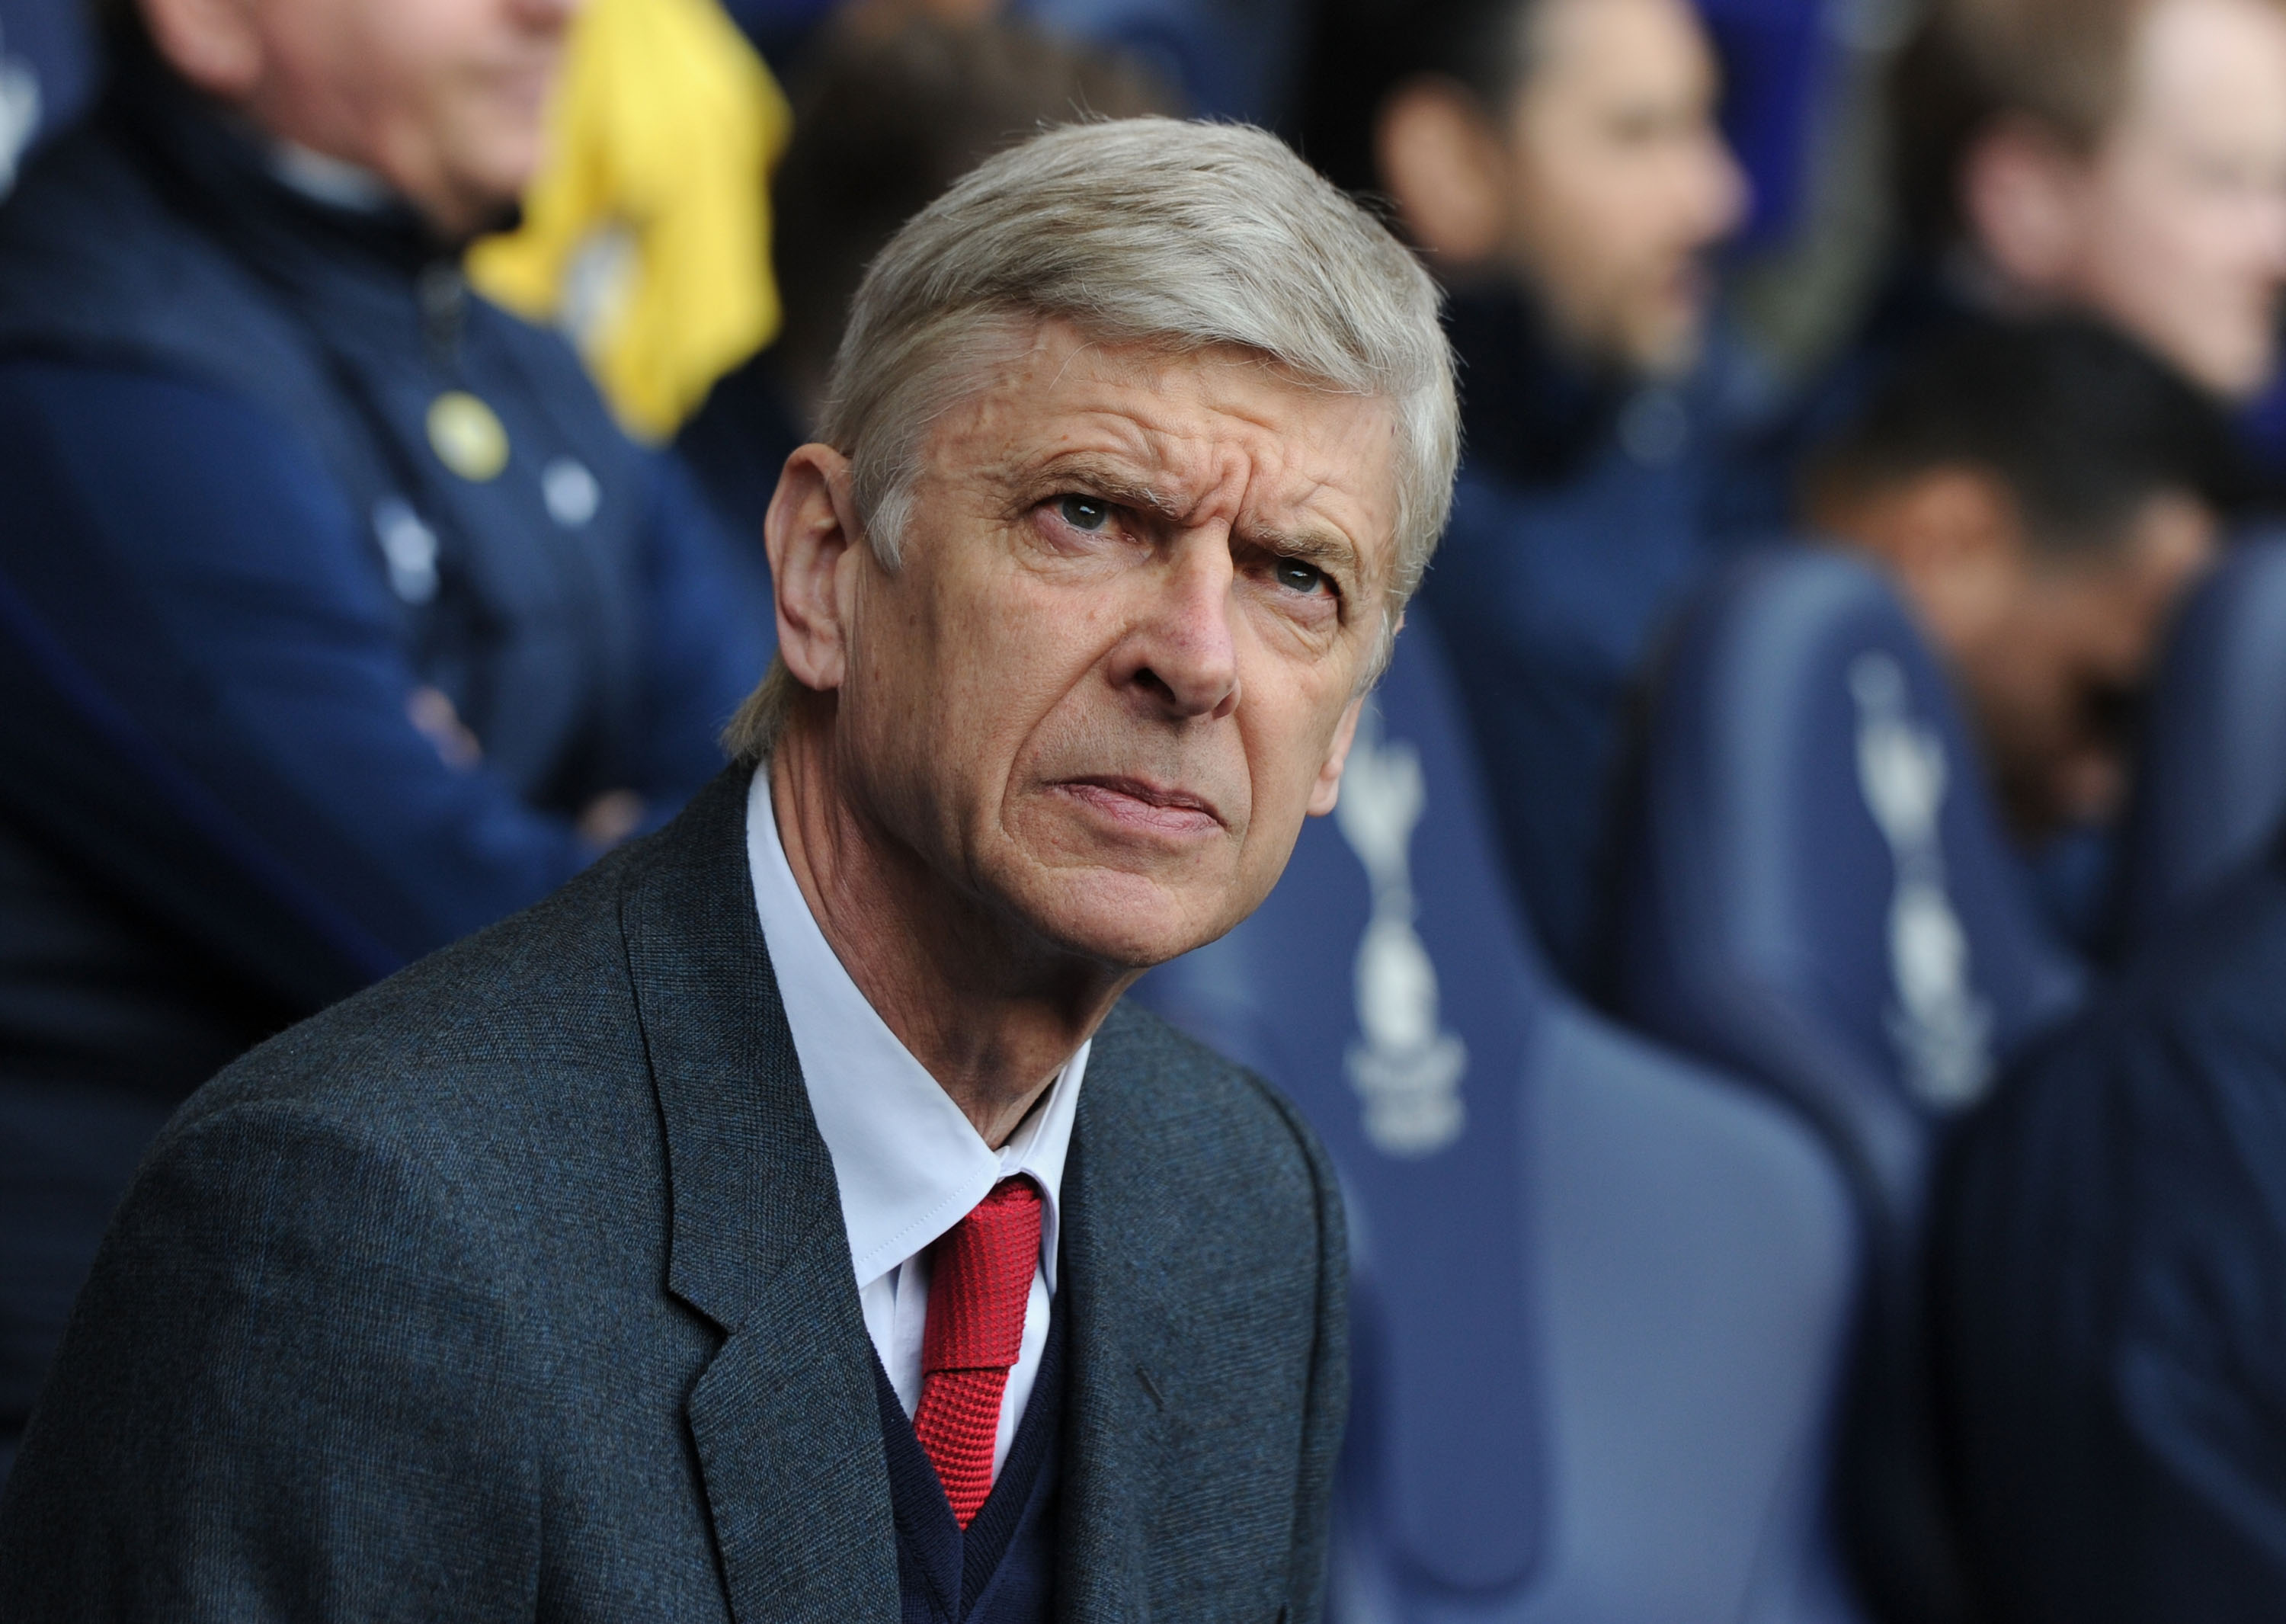 Hull City v Arsenal FA Cup: Team news, injury news, team line ups and TV times